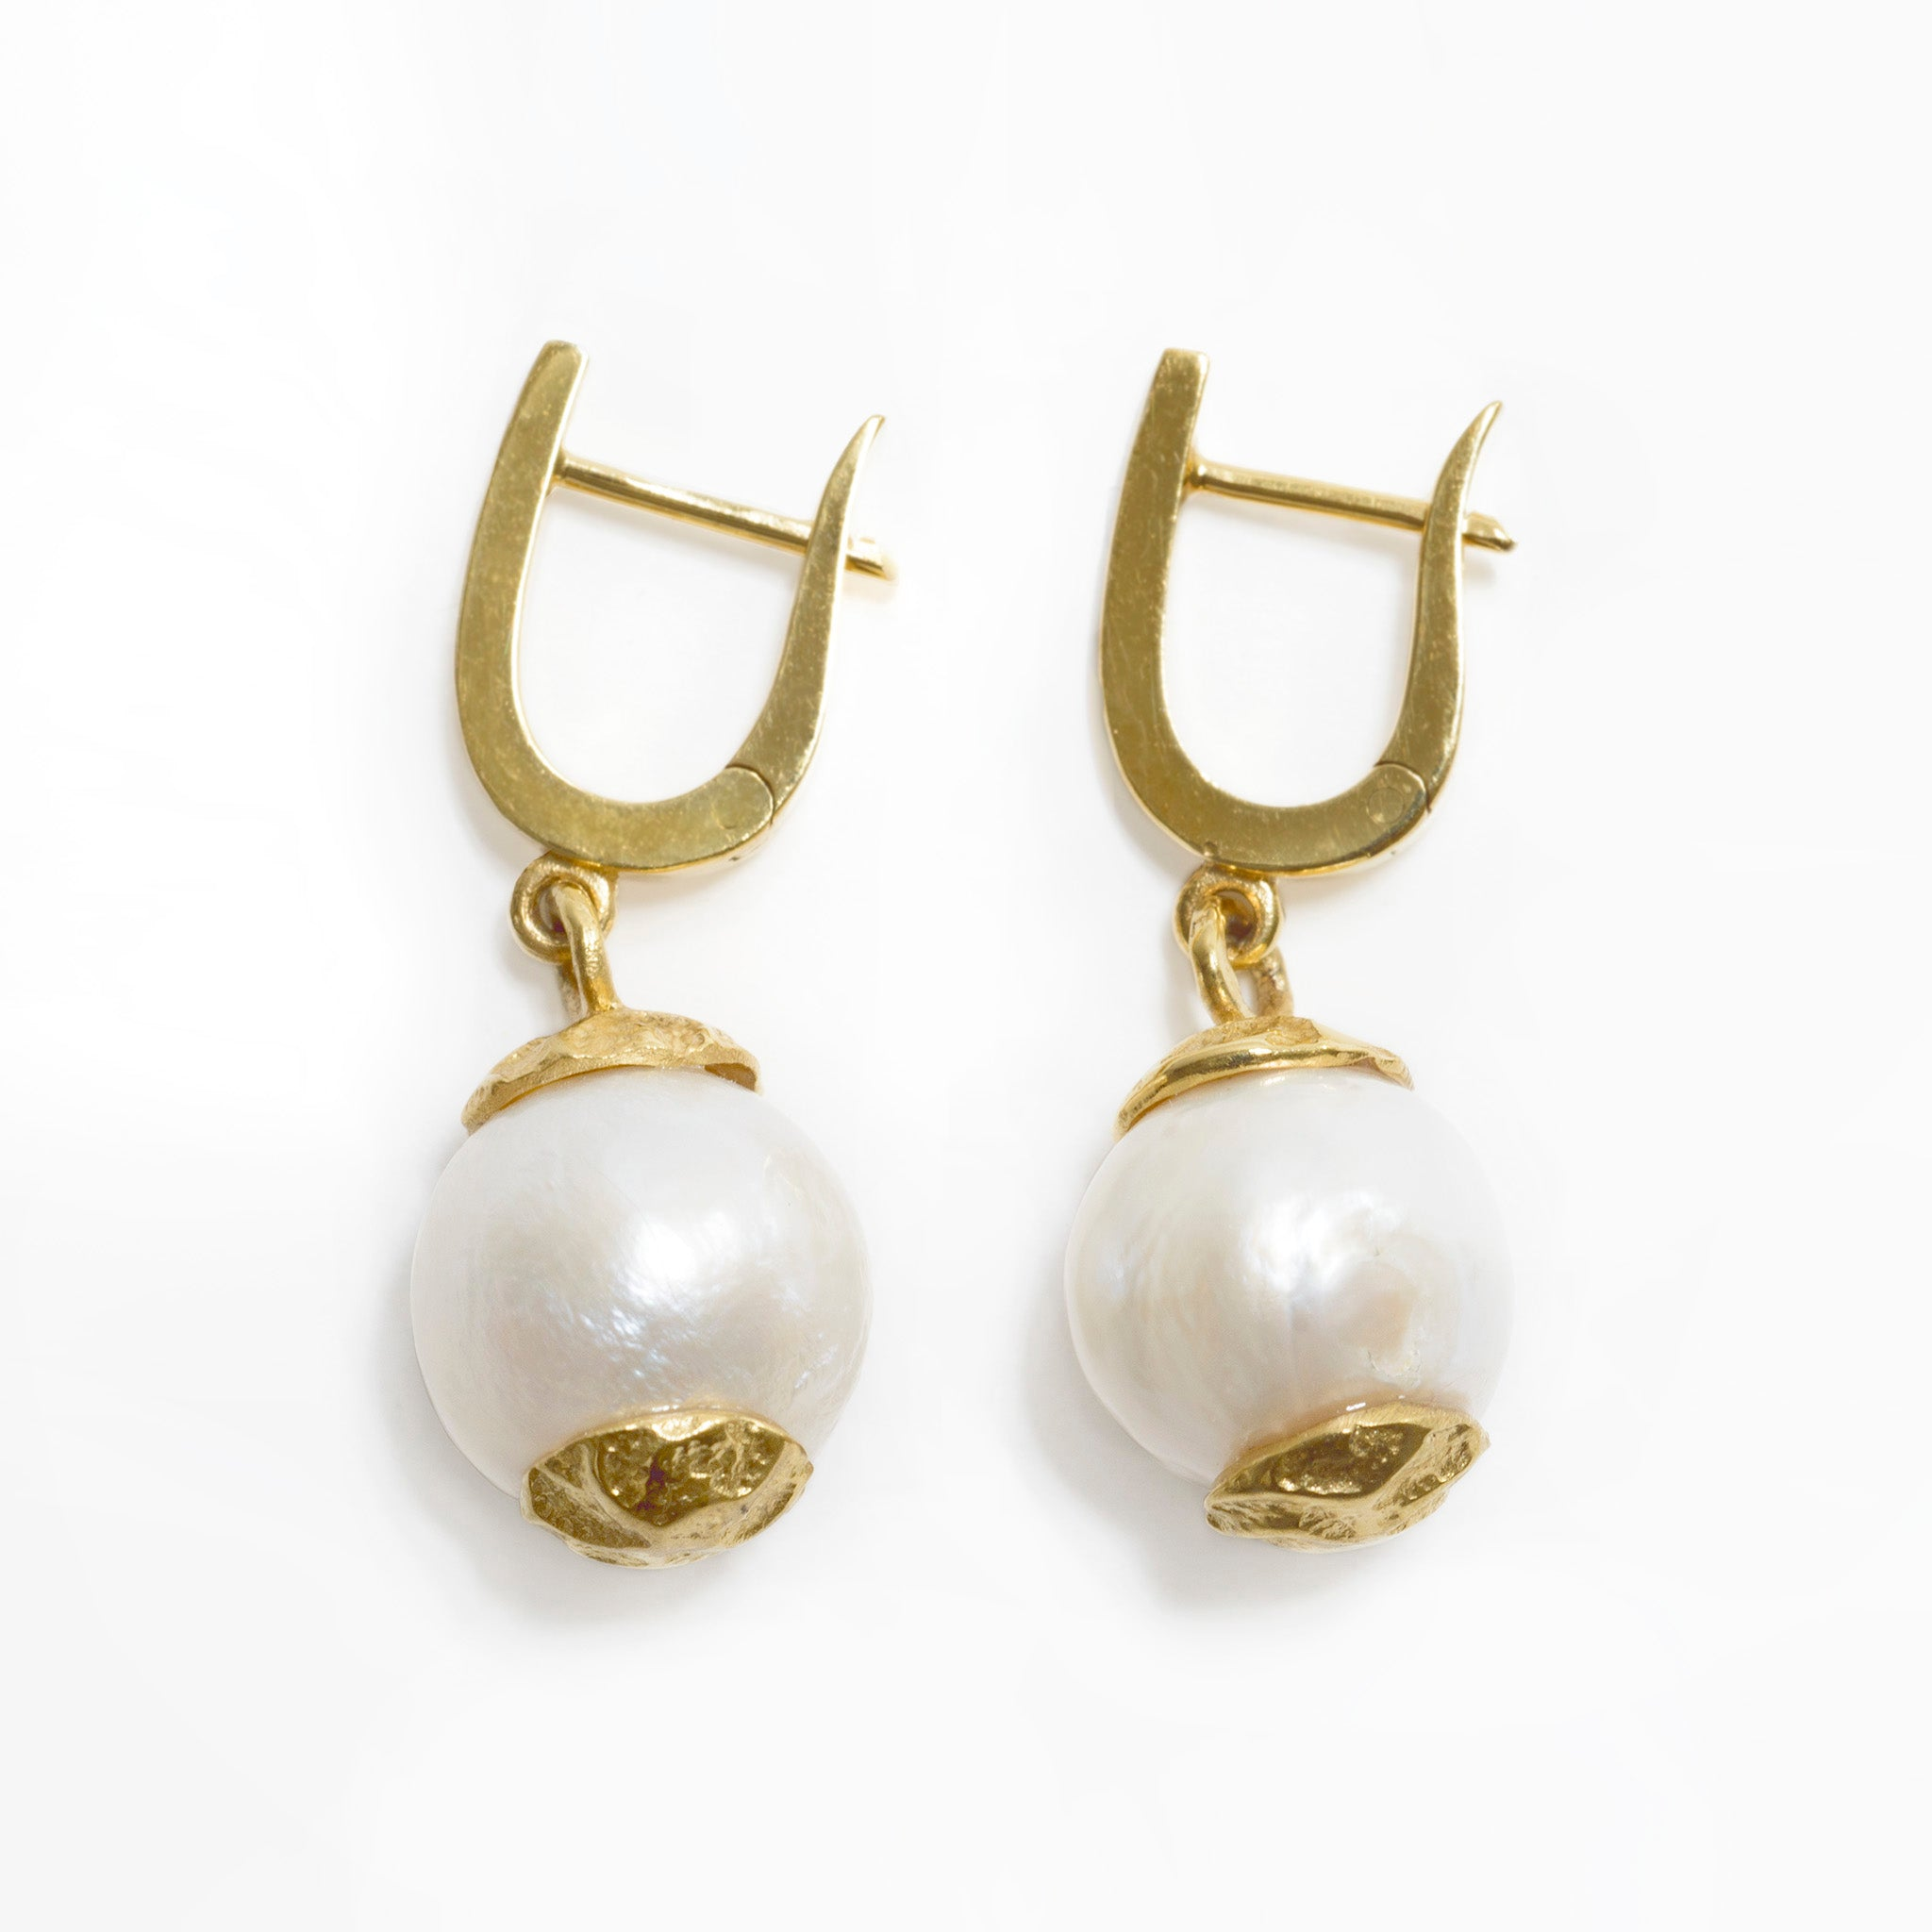 Dandini Pearl Earrings Image